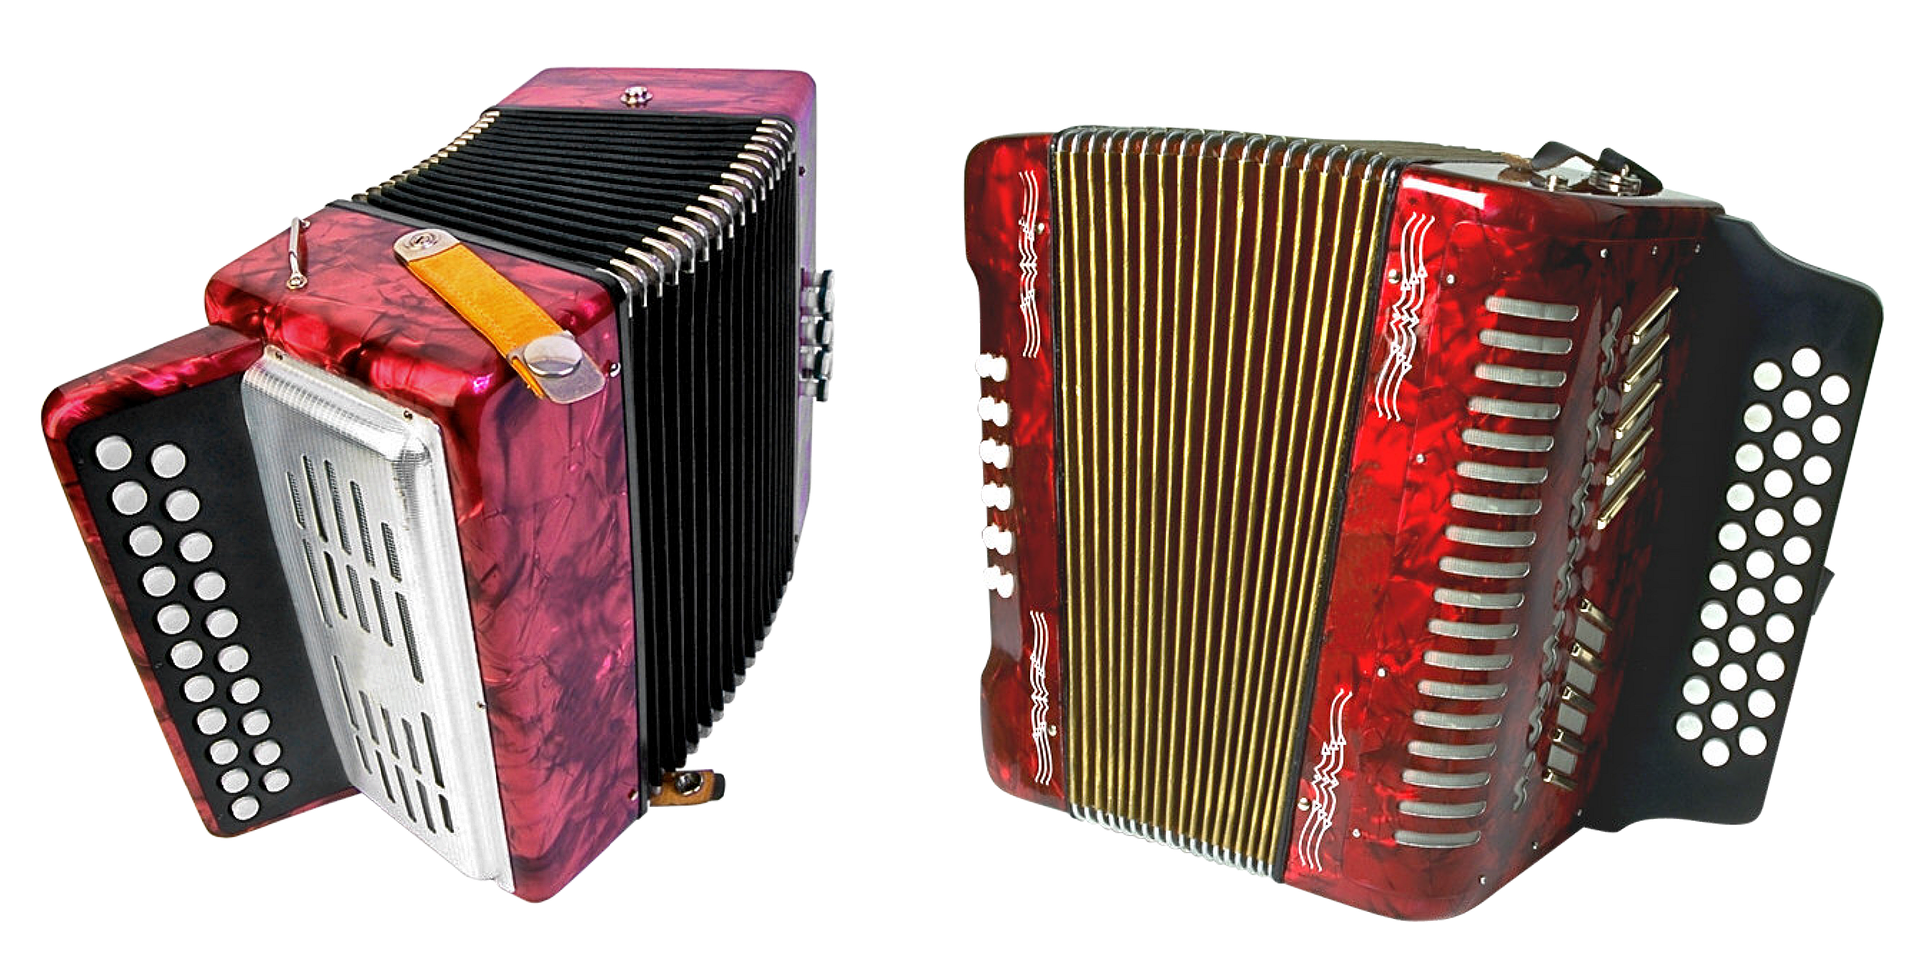 Two Accordions, Accordion, Instrument, Music, Musical, HQ Photo